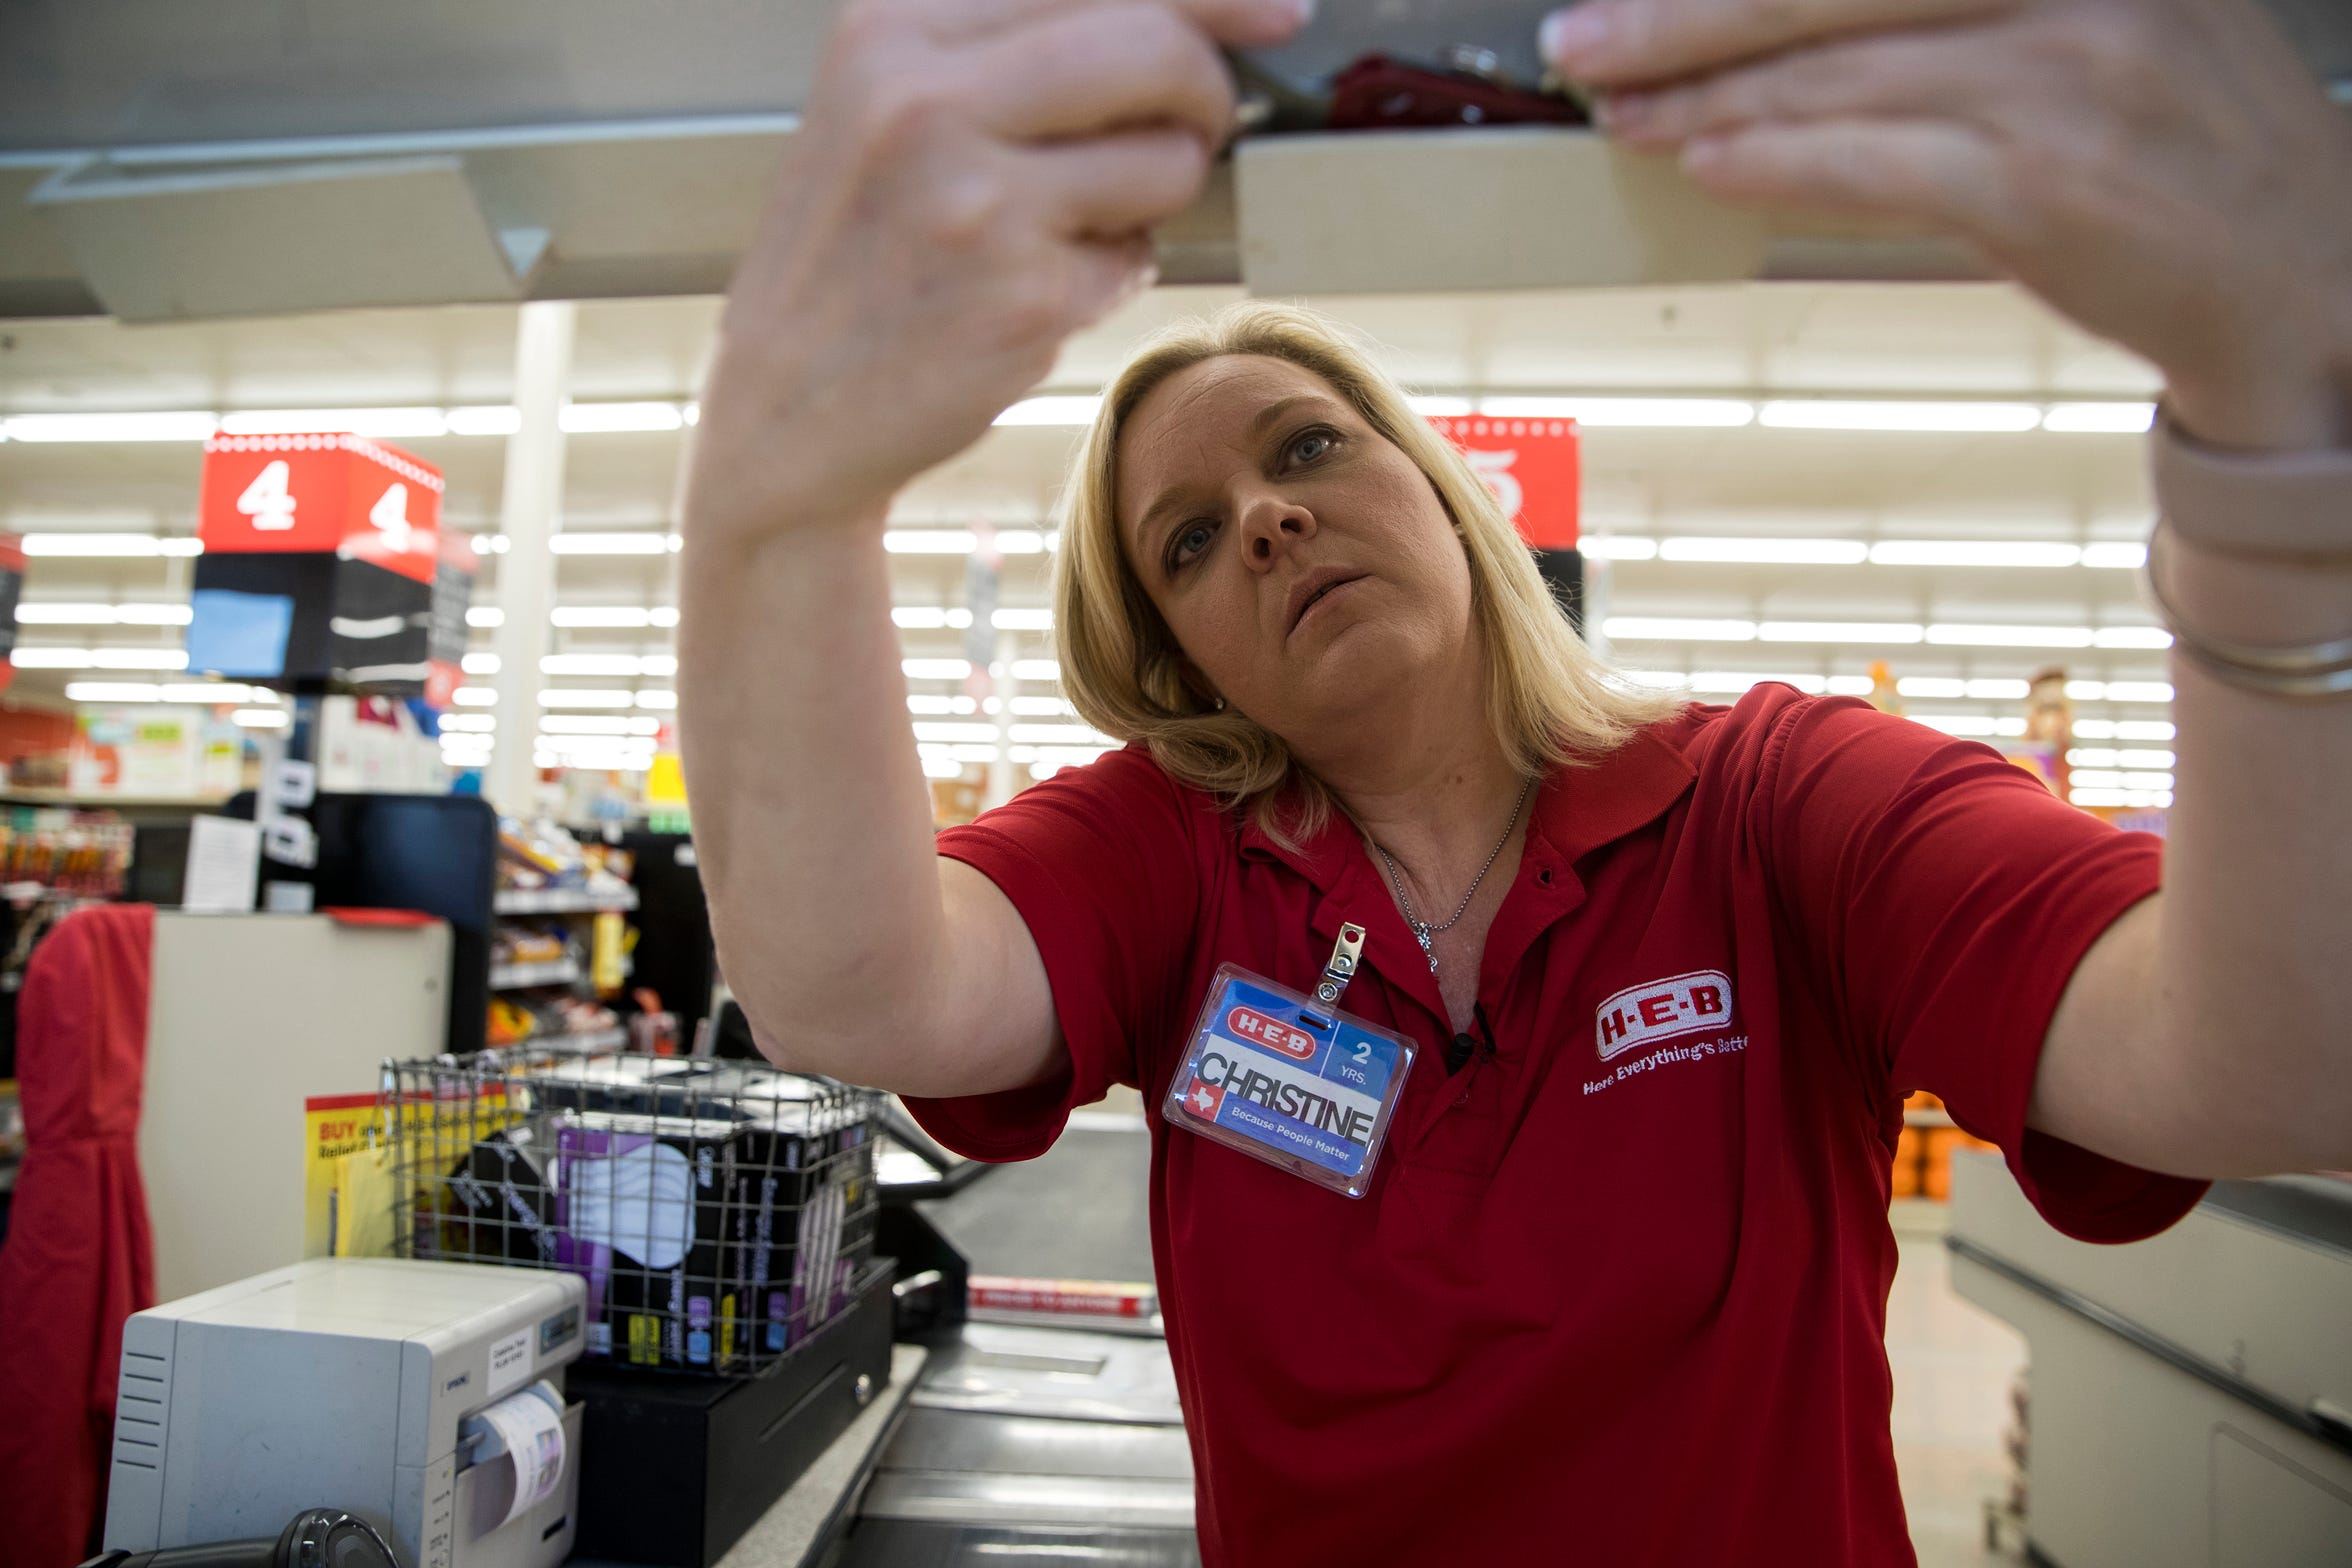 """Christine Kidd McFarland, a fifth-grade teacher at Sinton Elementary School in Sinton, Texas, rubs her neck as she waits for a customer to check out at H-E-B, a grocery store, on Monday, September 17, 2018. Three years ago, she said she applied for free or reduced lunch for her son. """"I'm a teacher. And I qualified for reduced lunch. What does that say?"""""""